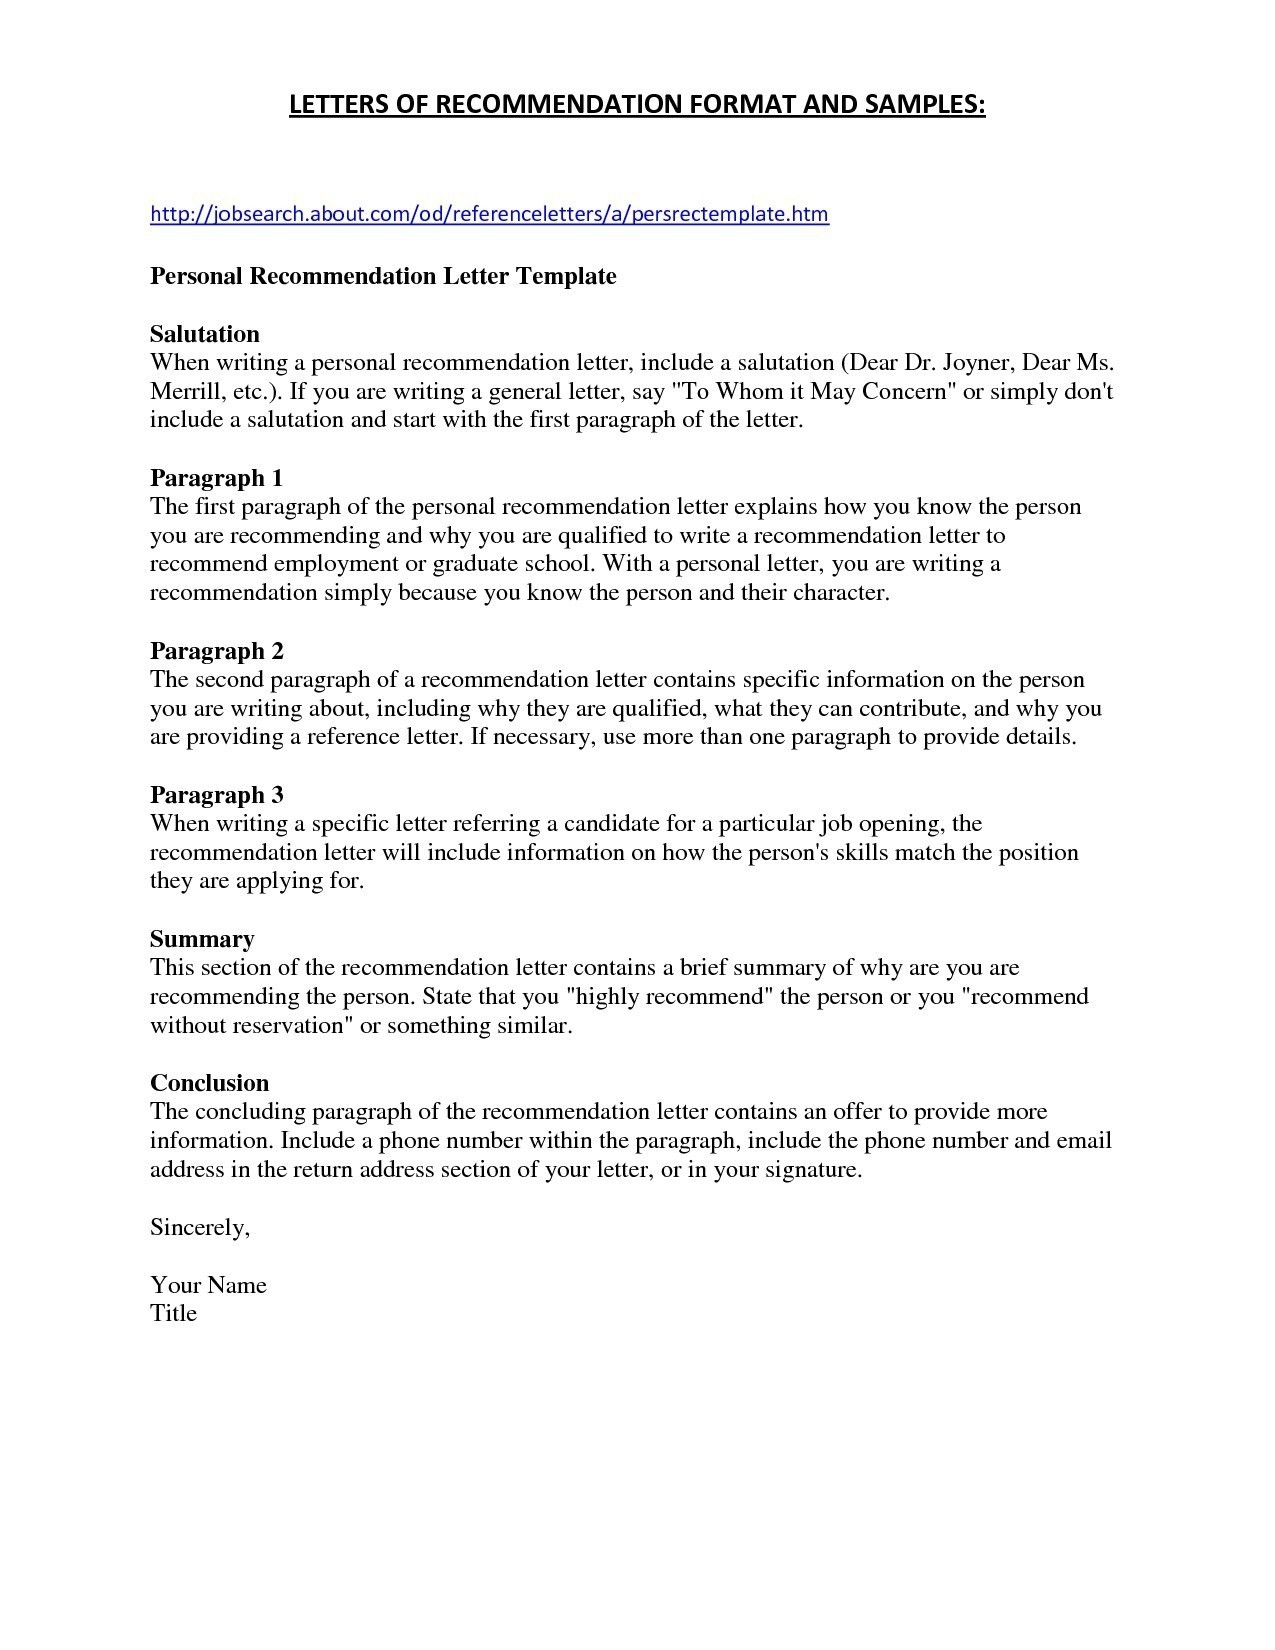 Letter Of Intent Template Free - Letter Intent Job Example Best Letter Intent Sample Job New Non